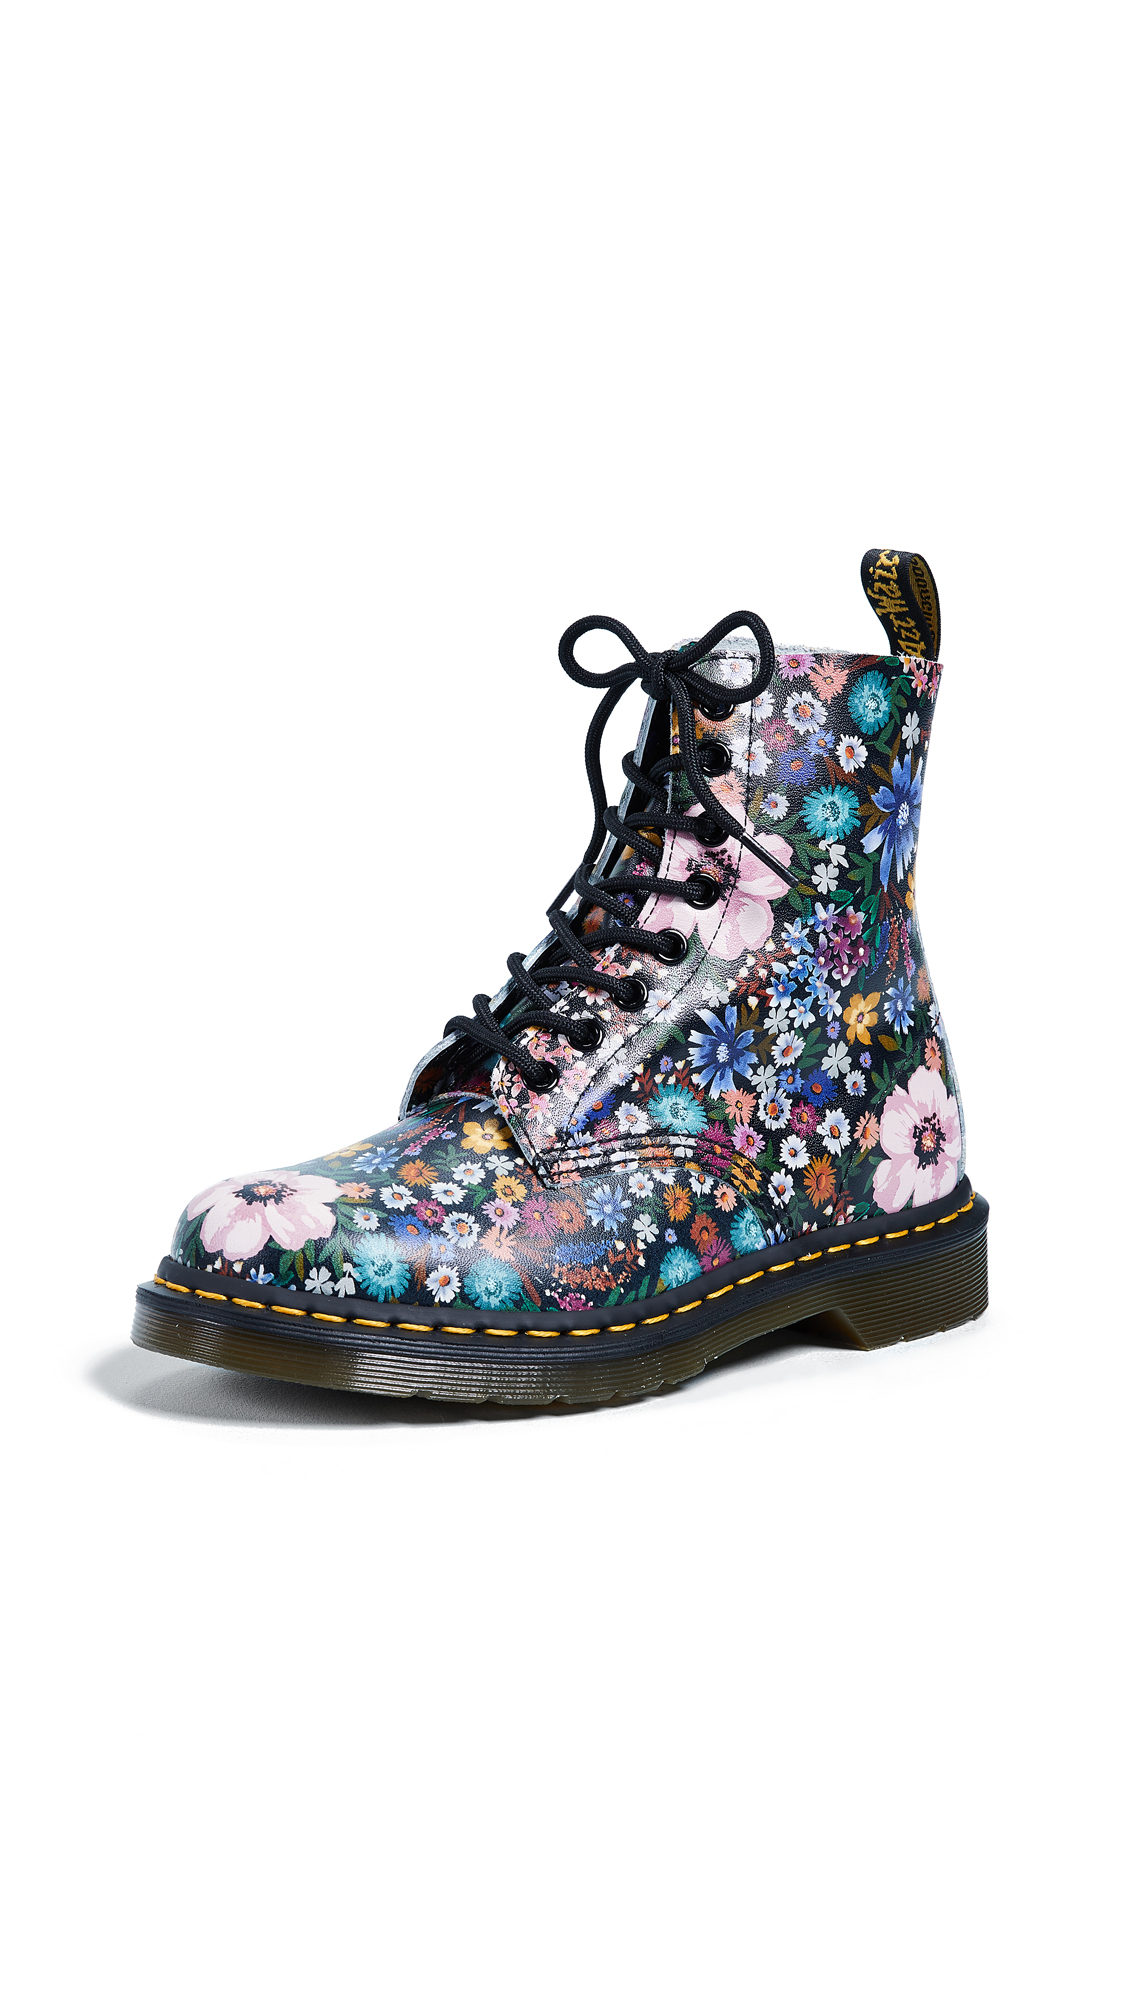 Dr. Martens Pascal WL 8 Eye Boots - Black/Mallow Pink